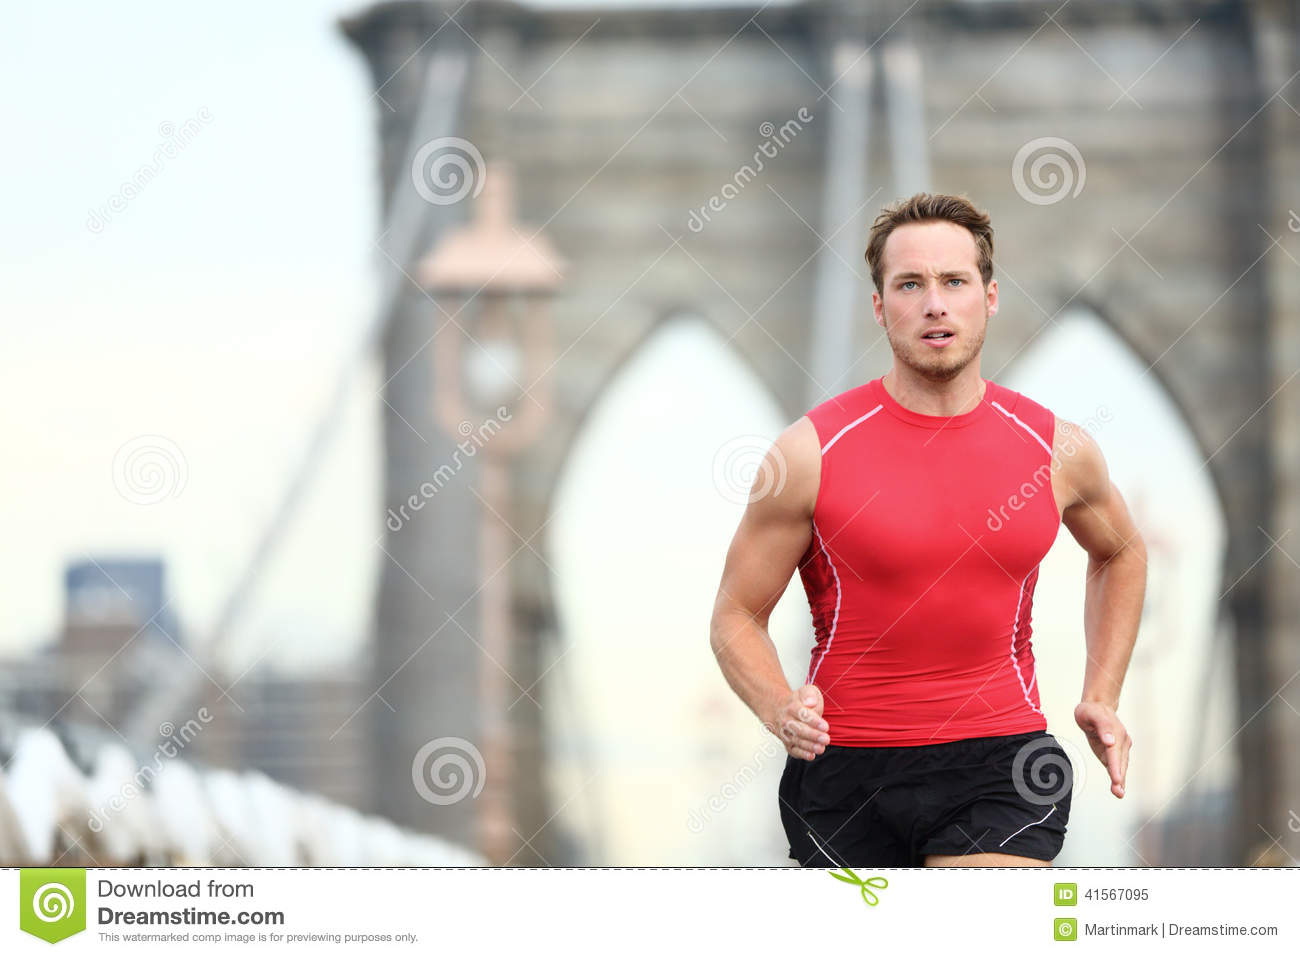 Running Man Sprinting In New York City Stock Image - Image of power